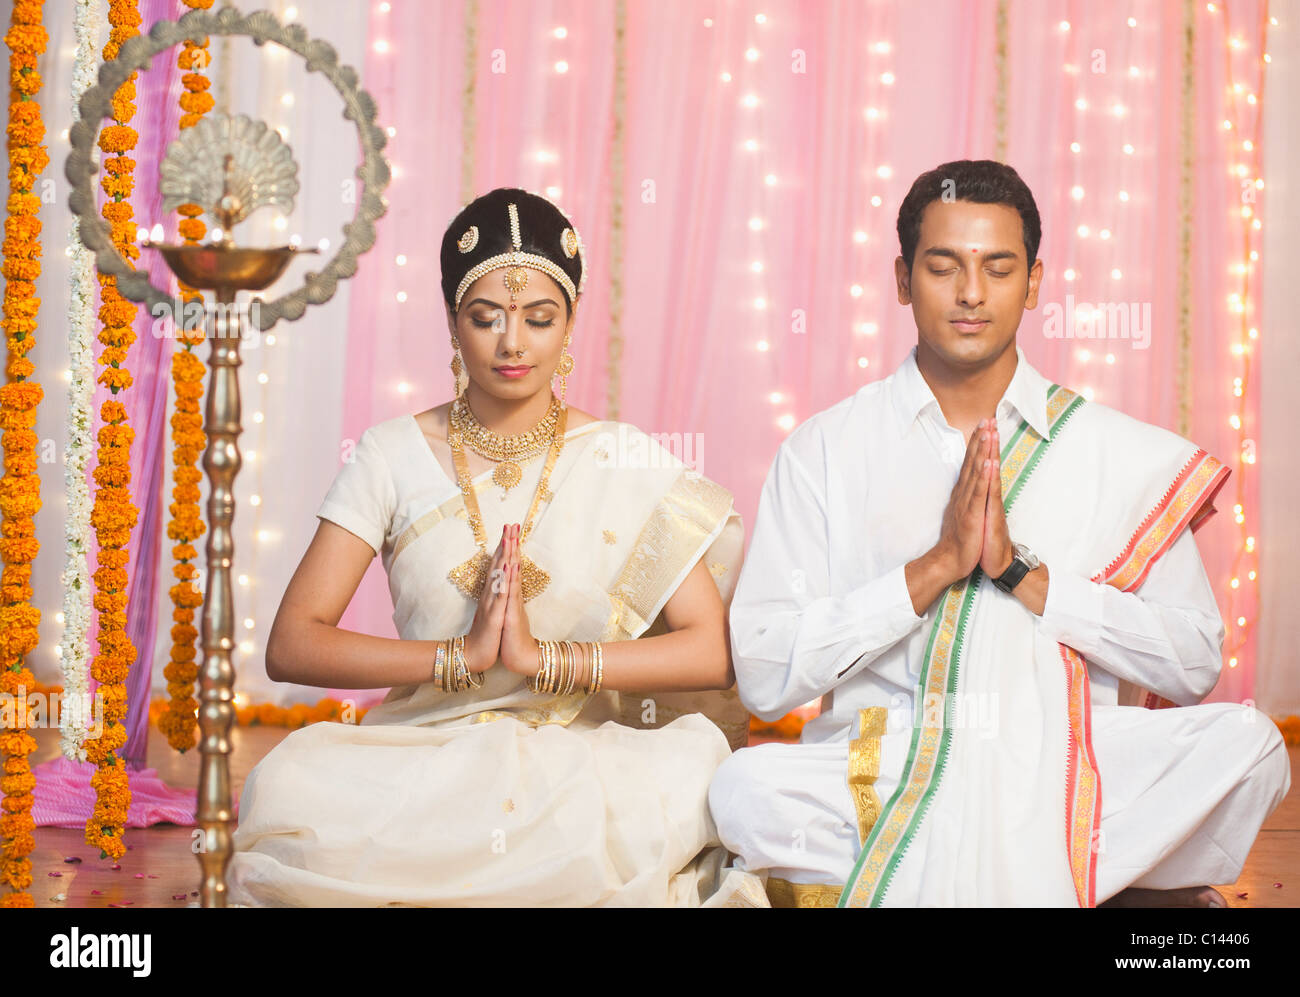 1eb0601e780fb Bride and bridegroom in traditional South Indian dress praying at wedding  ceremony - Stock Image